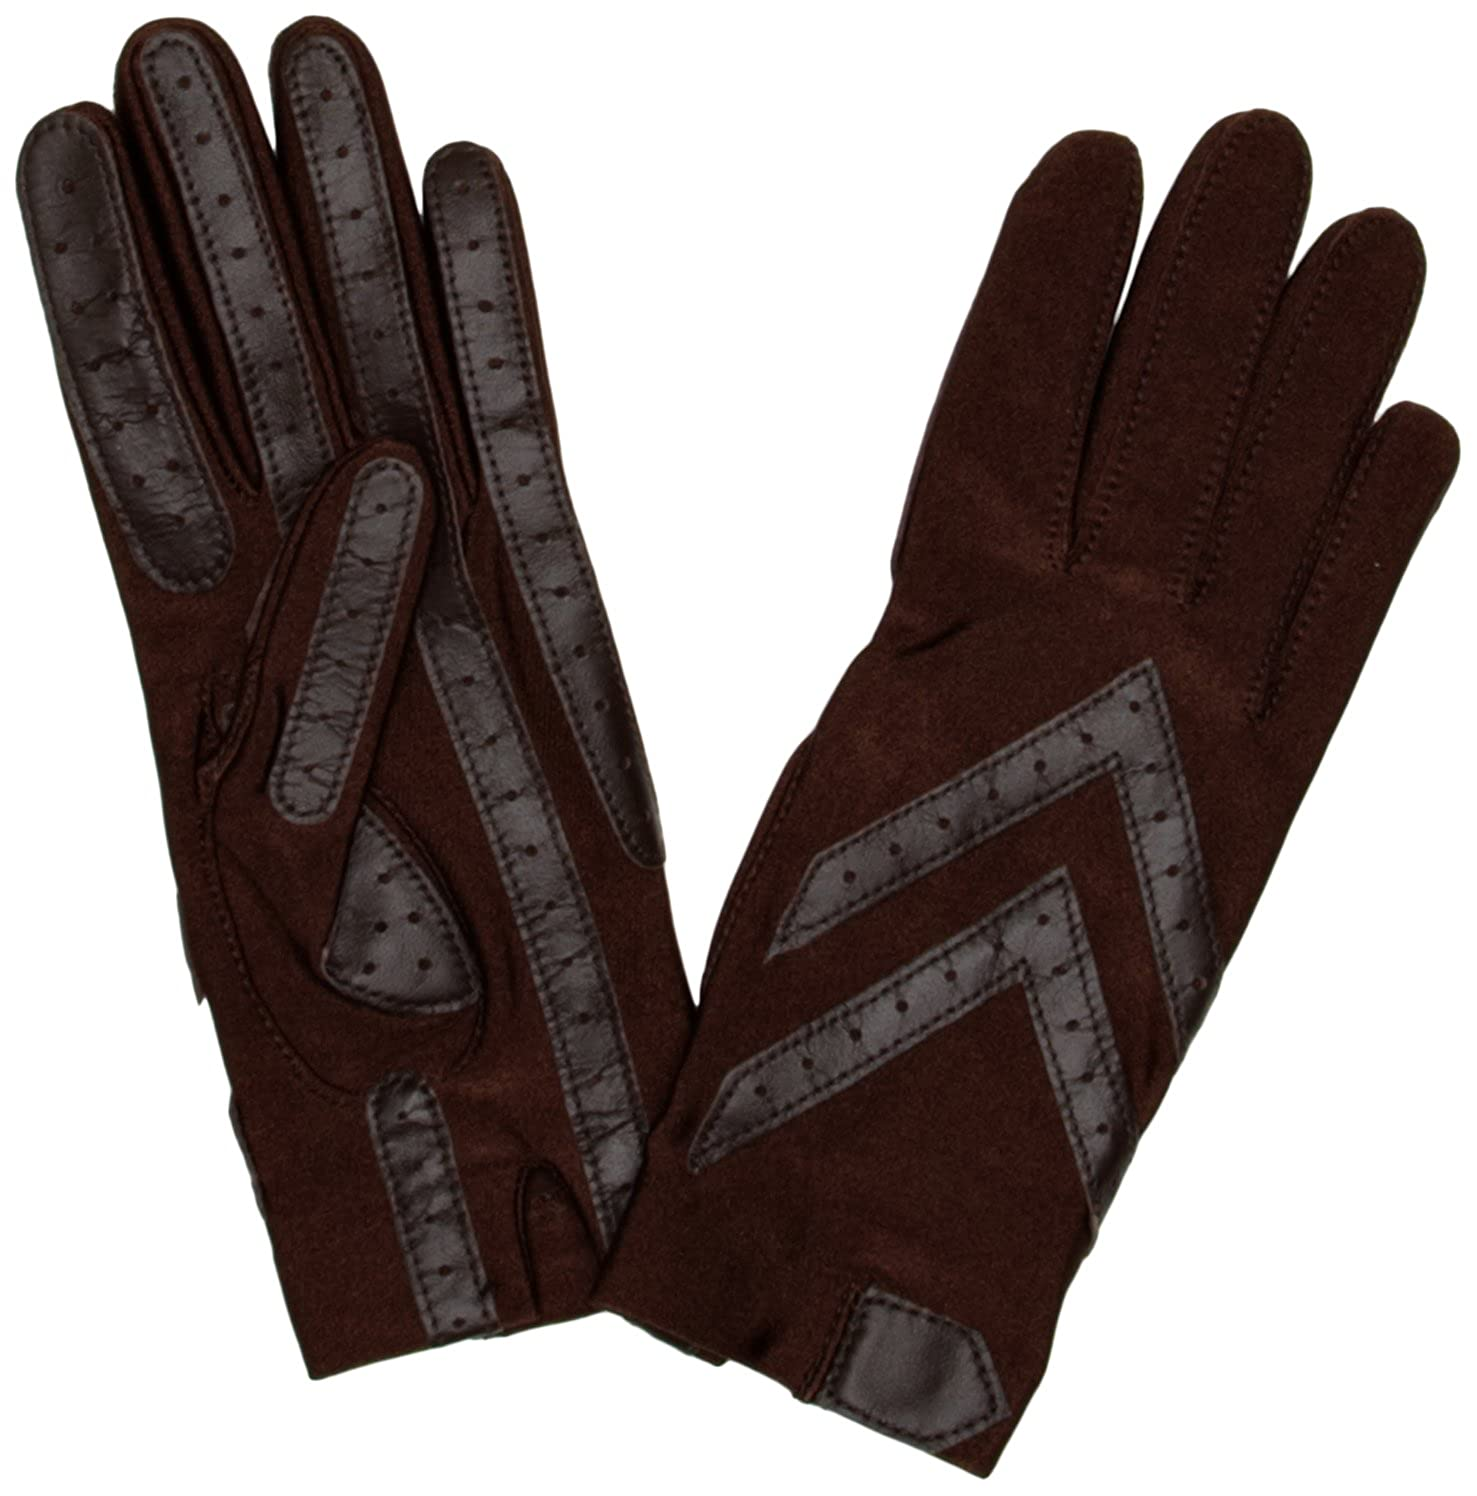 Driving gloves isotoner - Isotoner Women S Original Spandex Gloves Brown One Size Amazon Co Uk Clothing